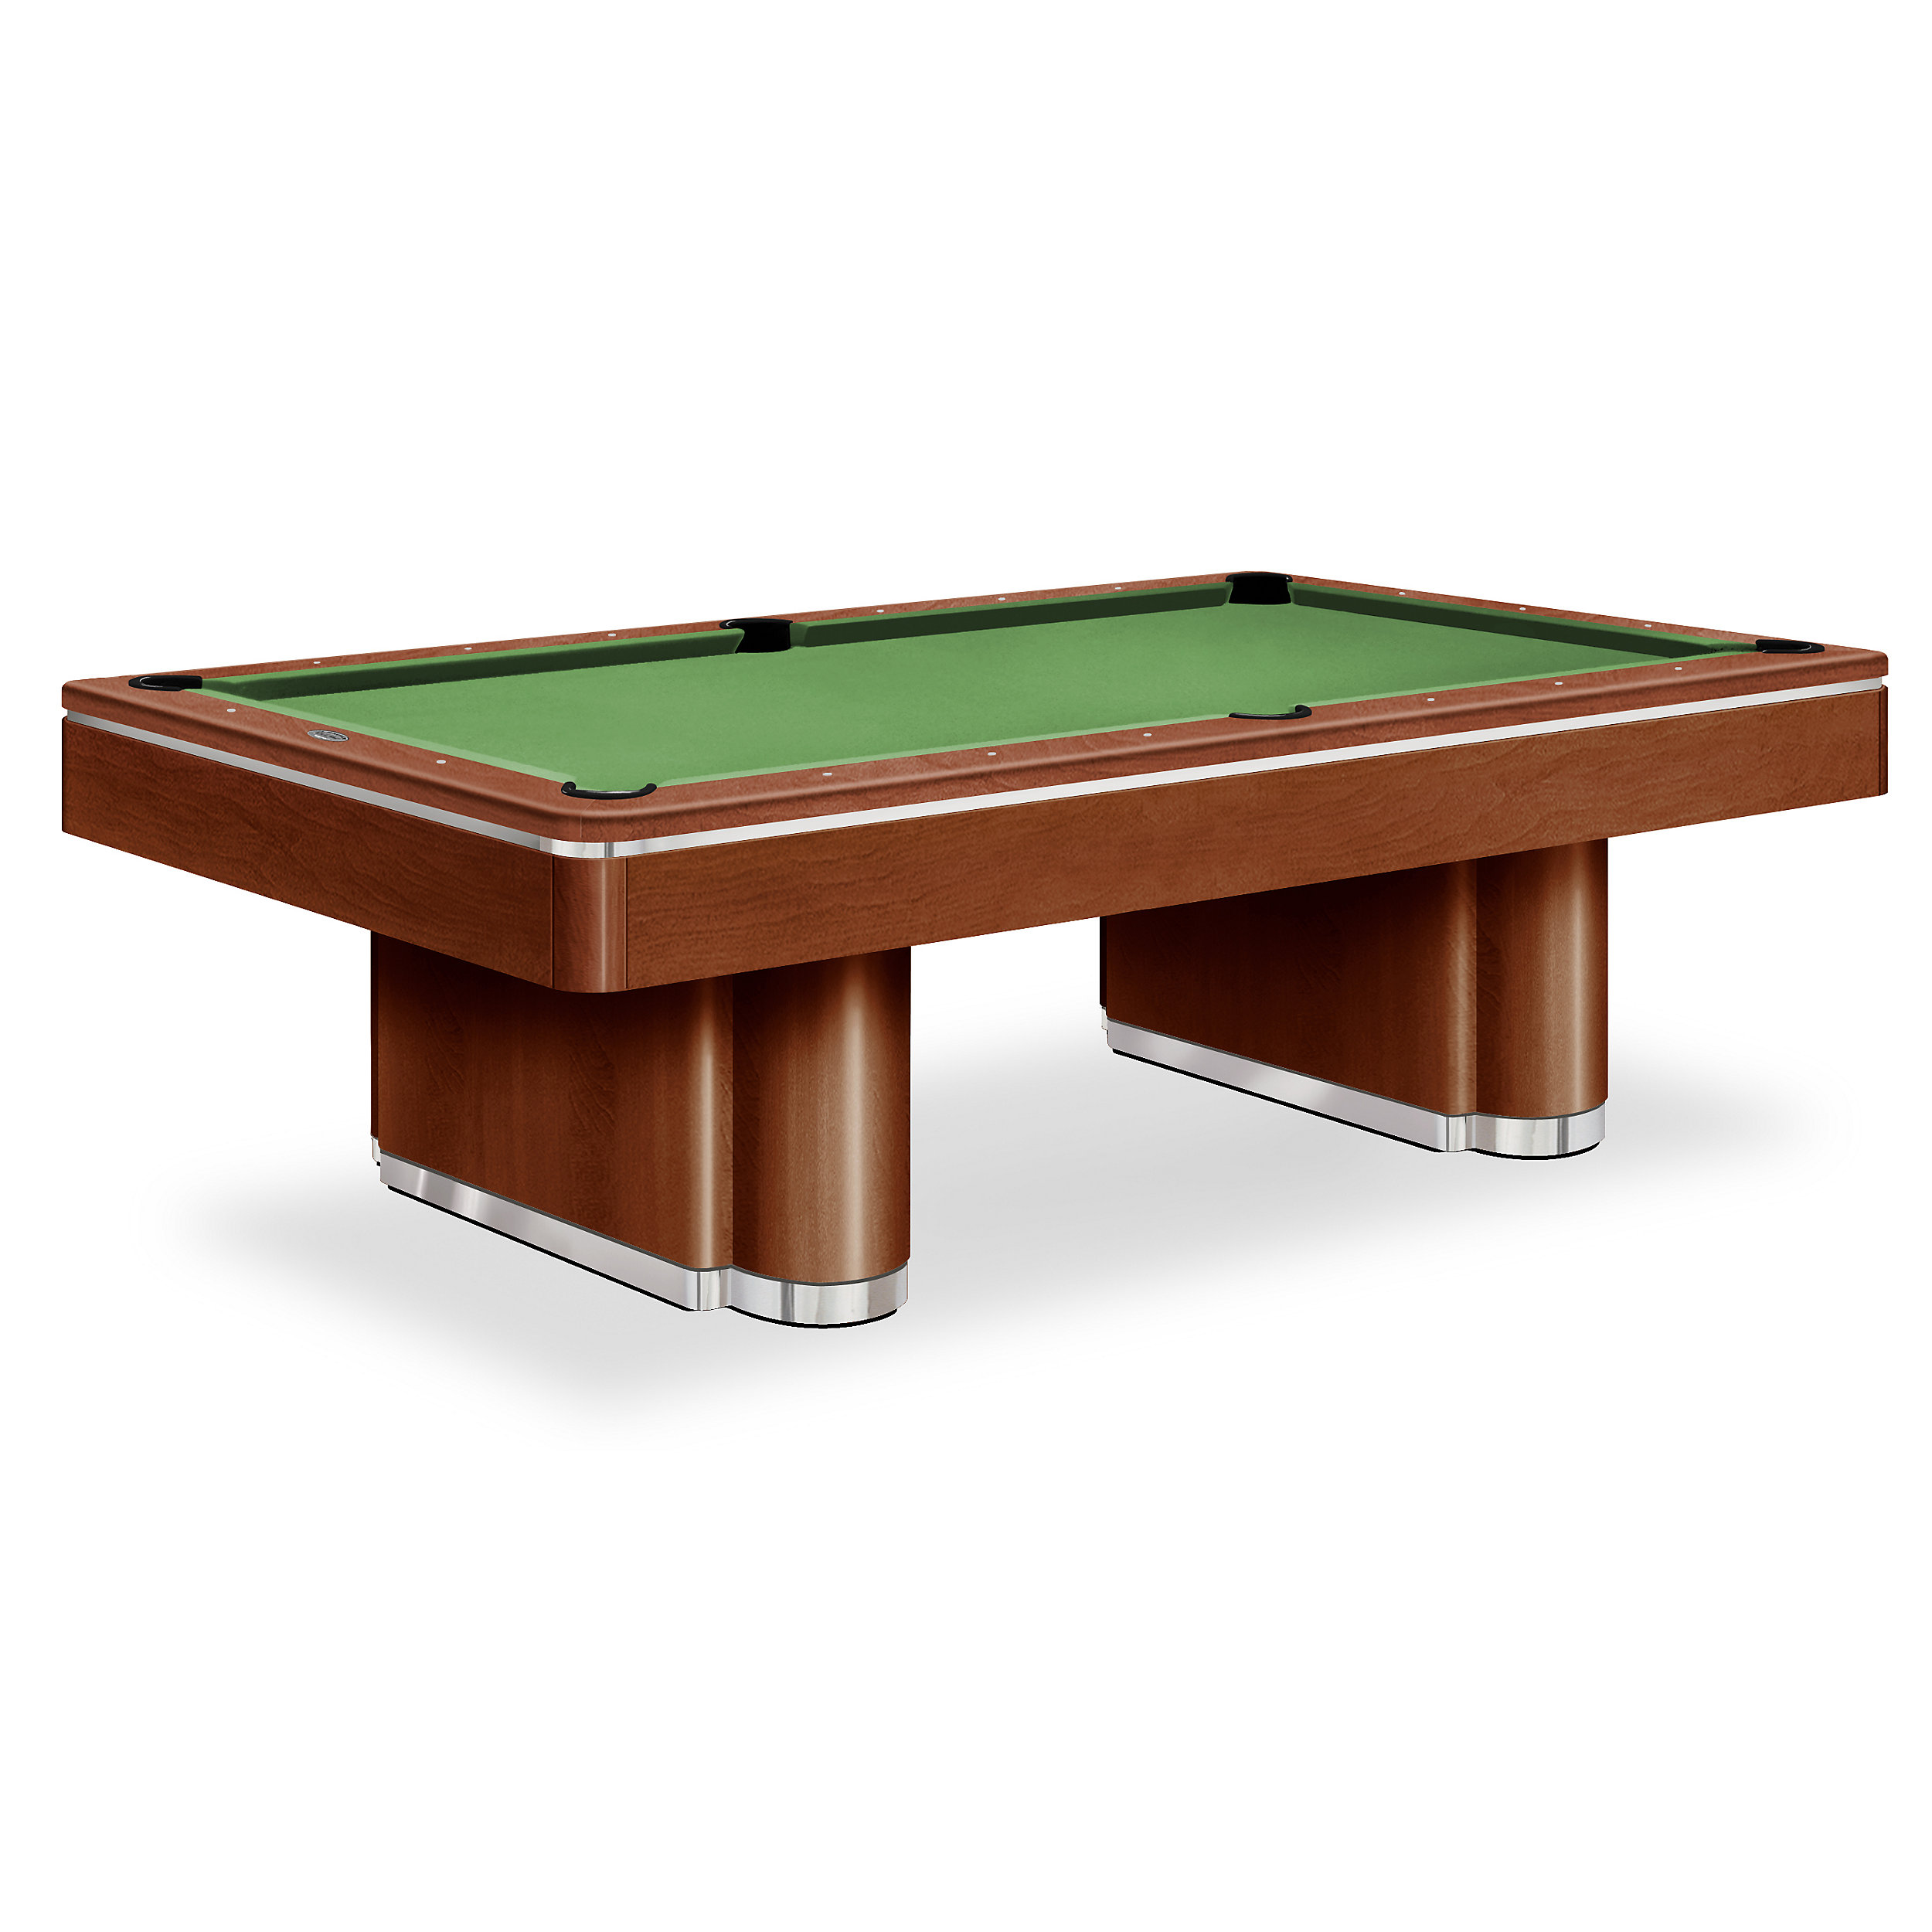 Contemporary Pool Table For Sale Sleek Pool Table - Sleek pool table